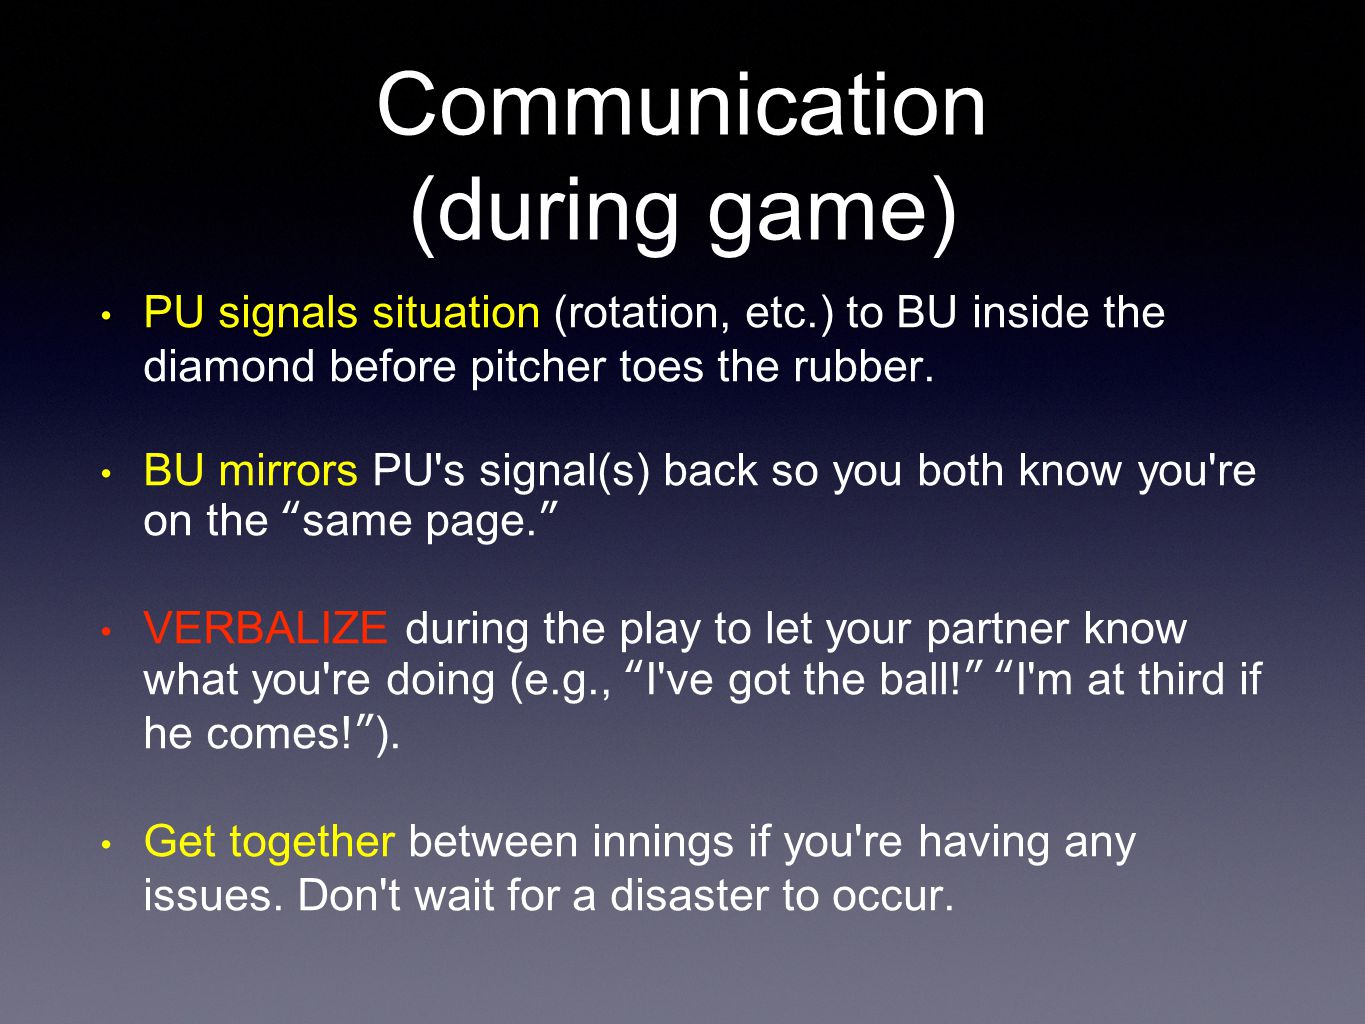 Communication (during game) PU signals situation PU signals situation (rotation, etc.) to BU inside the diamond before pitcher toes the rubber.